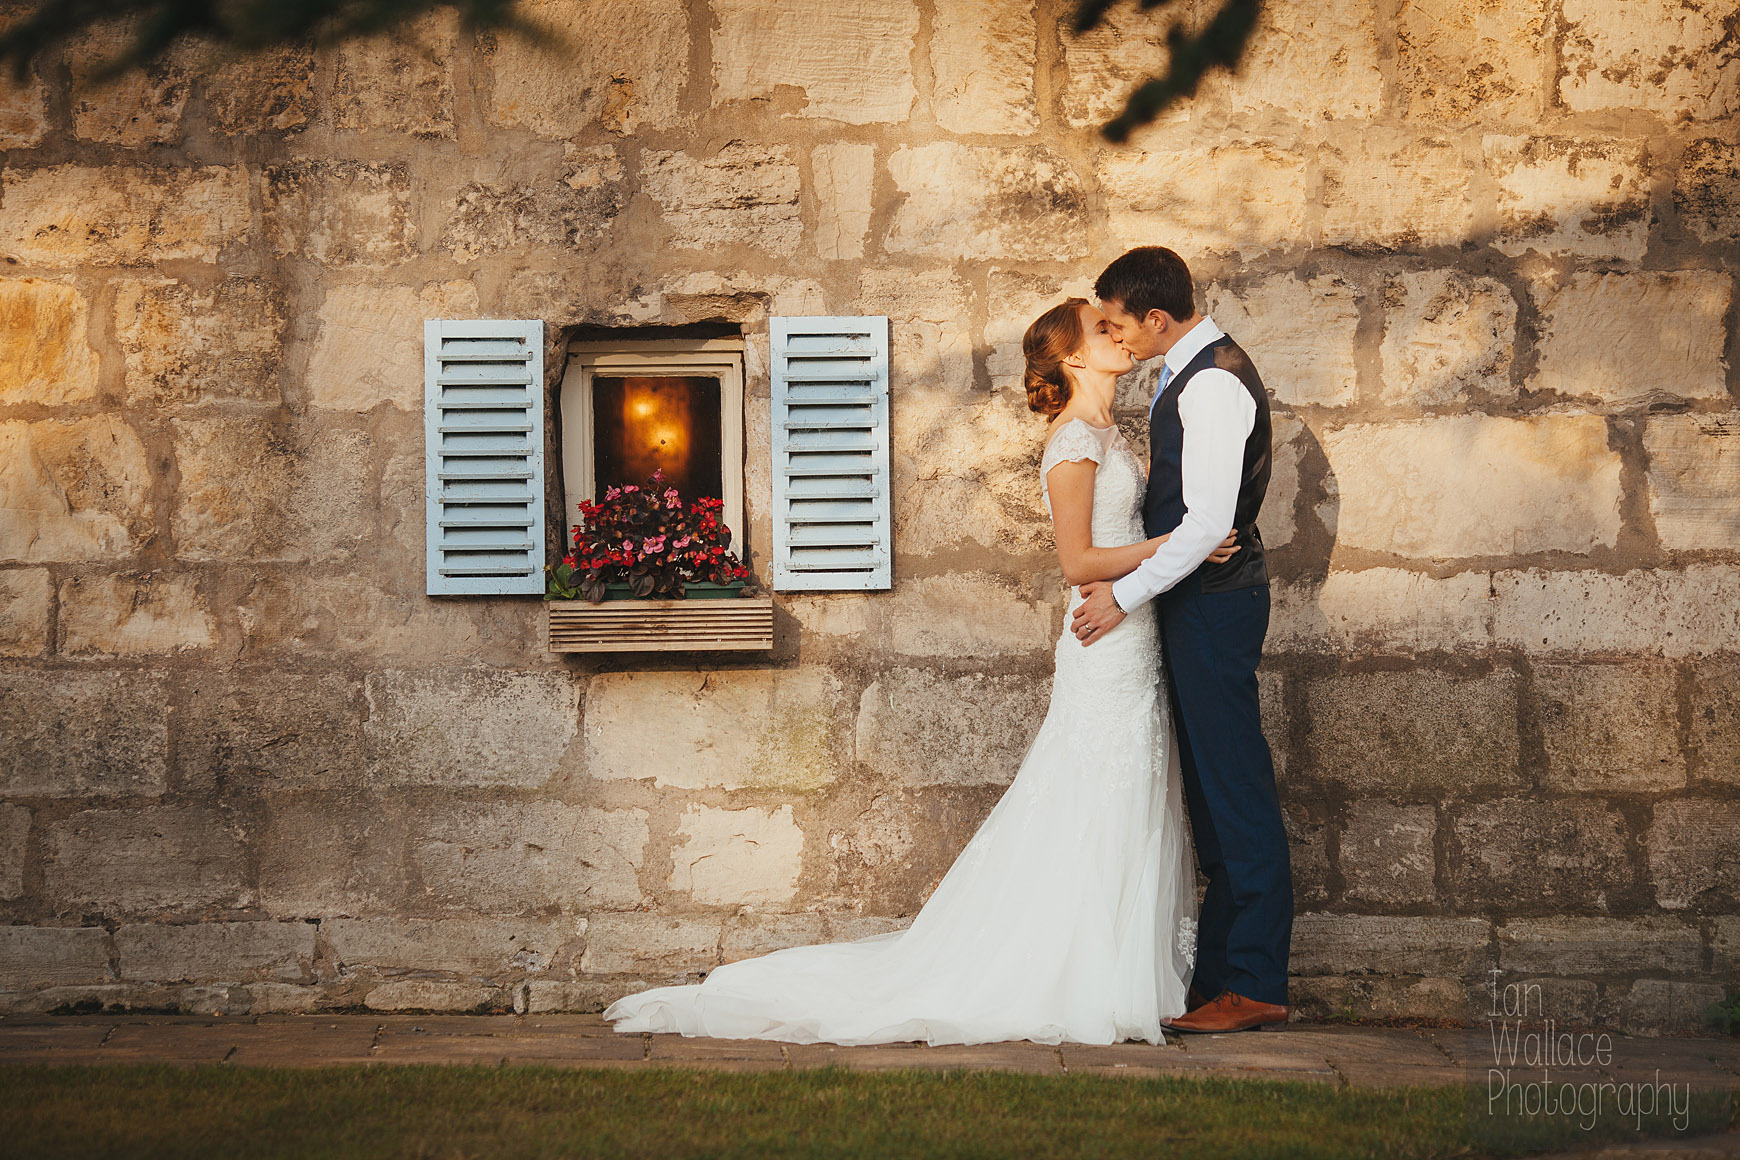 Couple embracing against a castle wall by a cute window